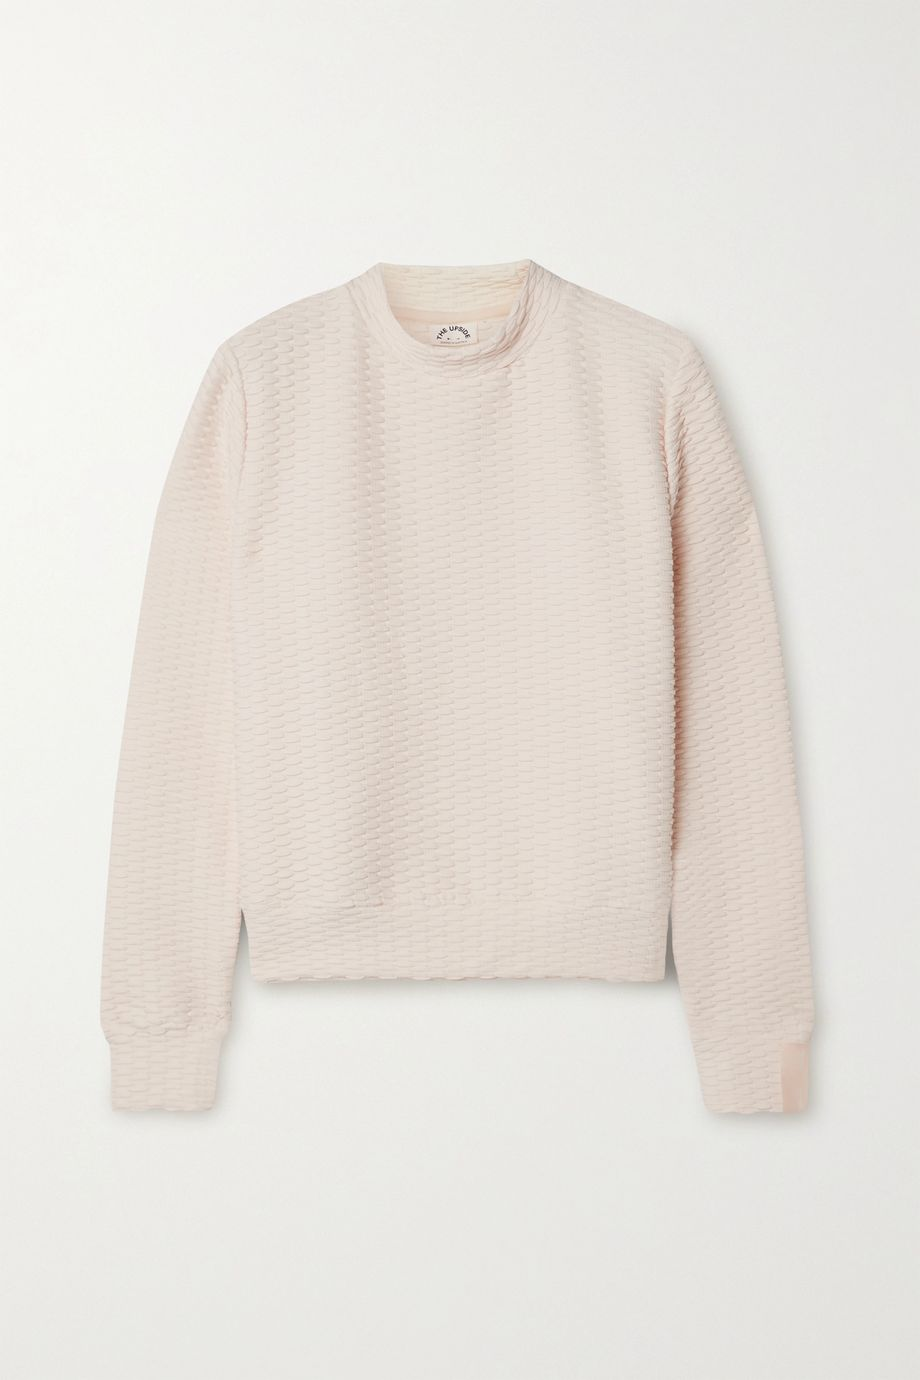 The Upside Inverto textured stretch-knit sweatshirt